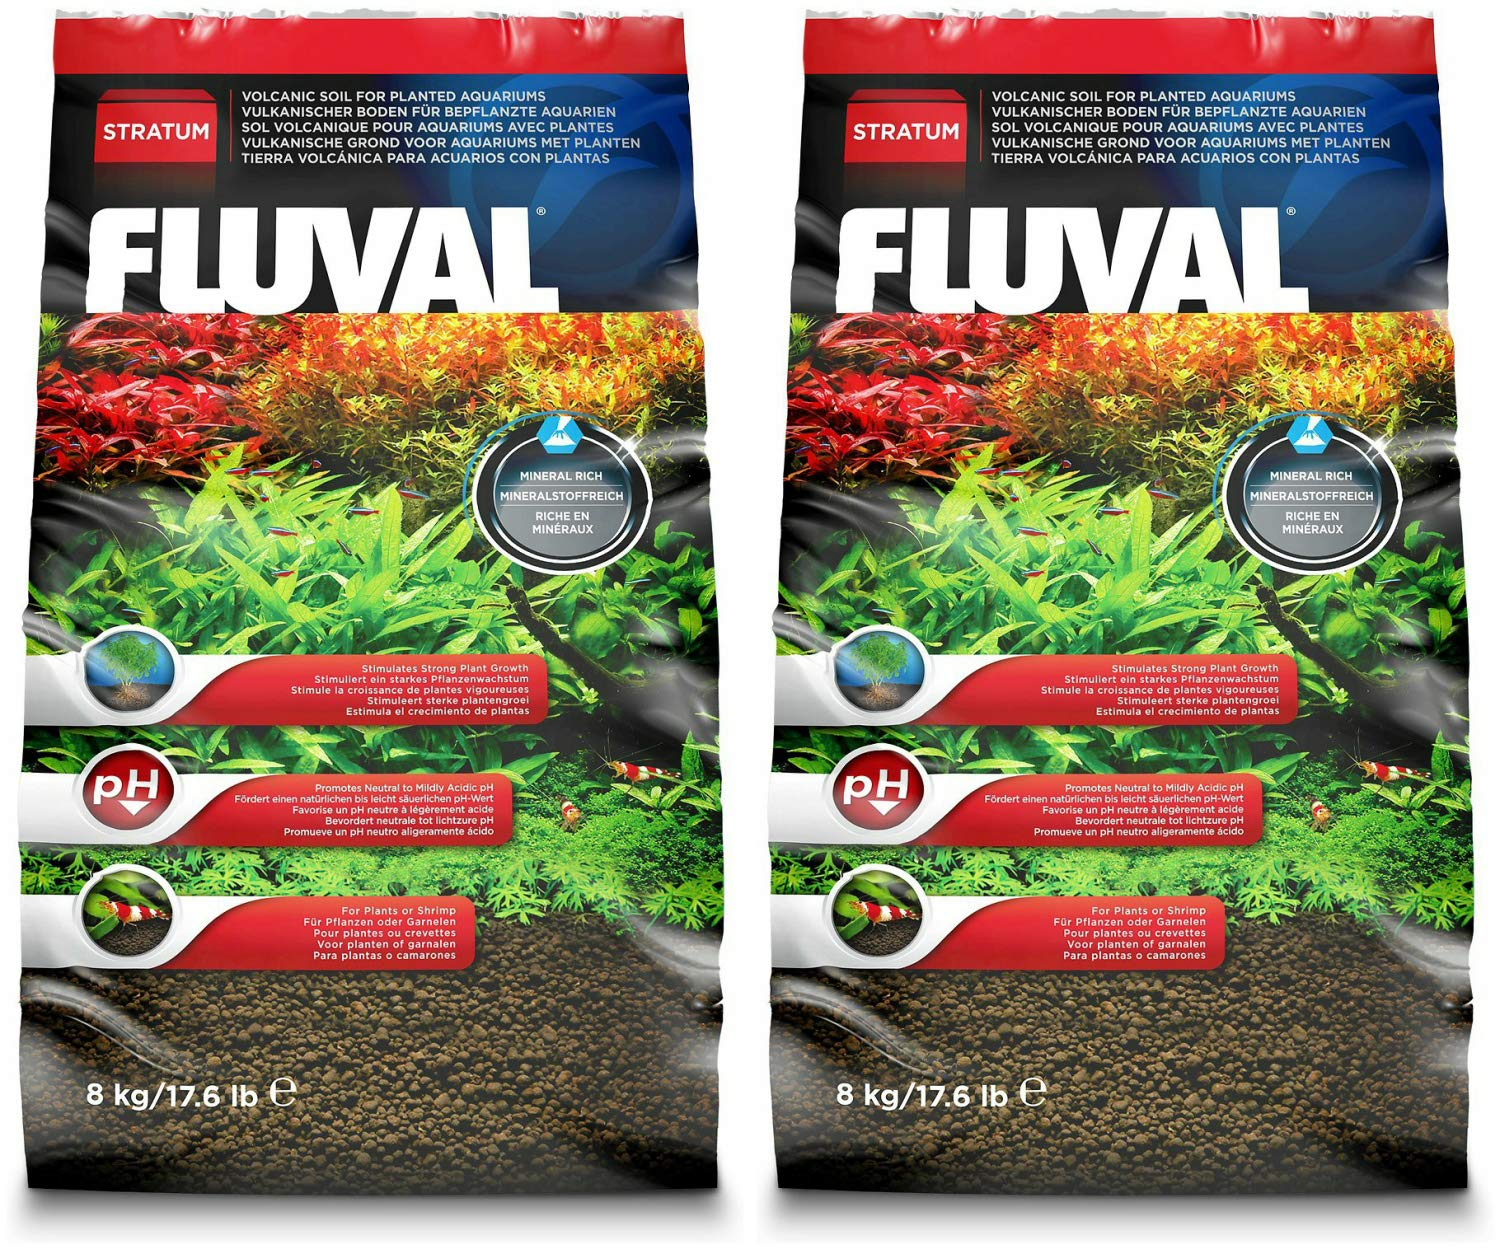 Amazon.com : Fluval Plant and Shrimp Stratum 35.2lb (2x17.6lb) : Pet Supplies